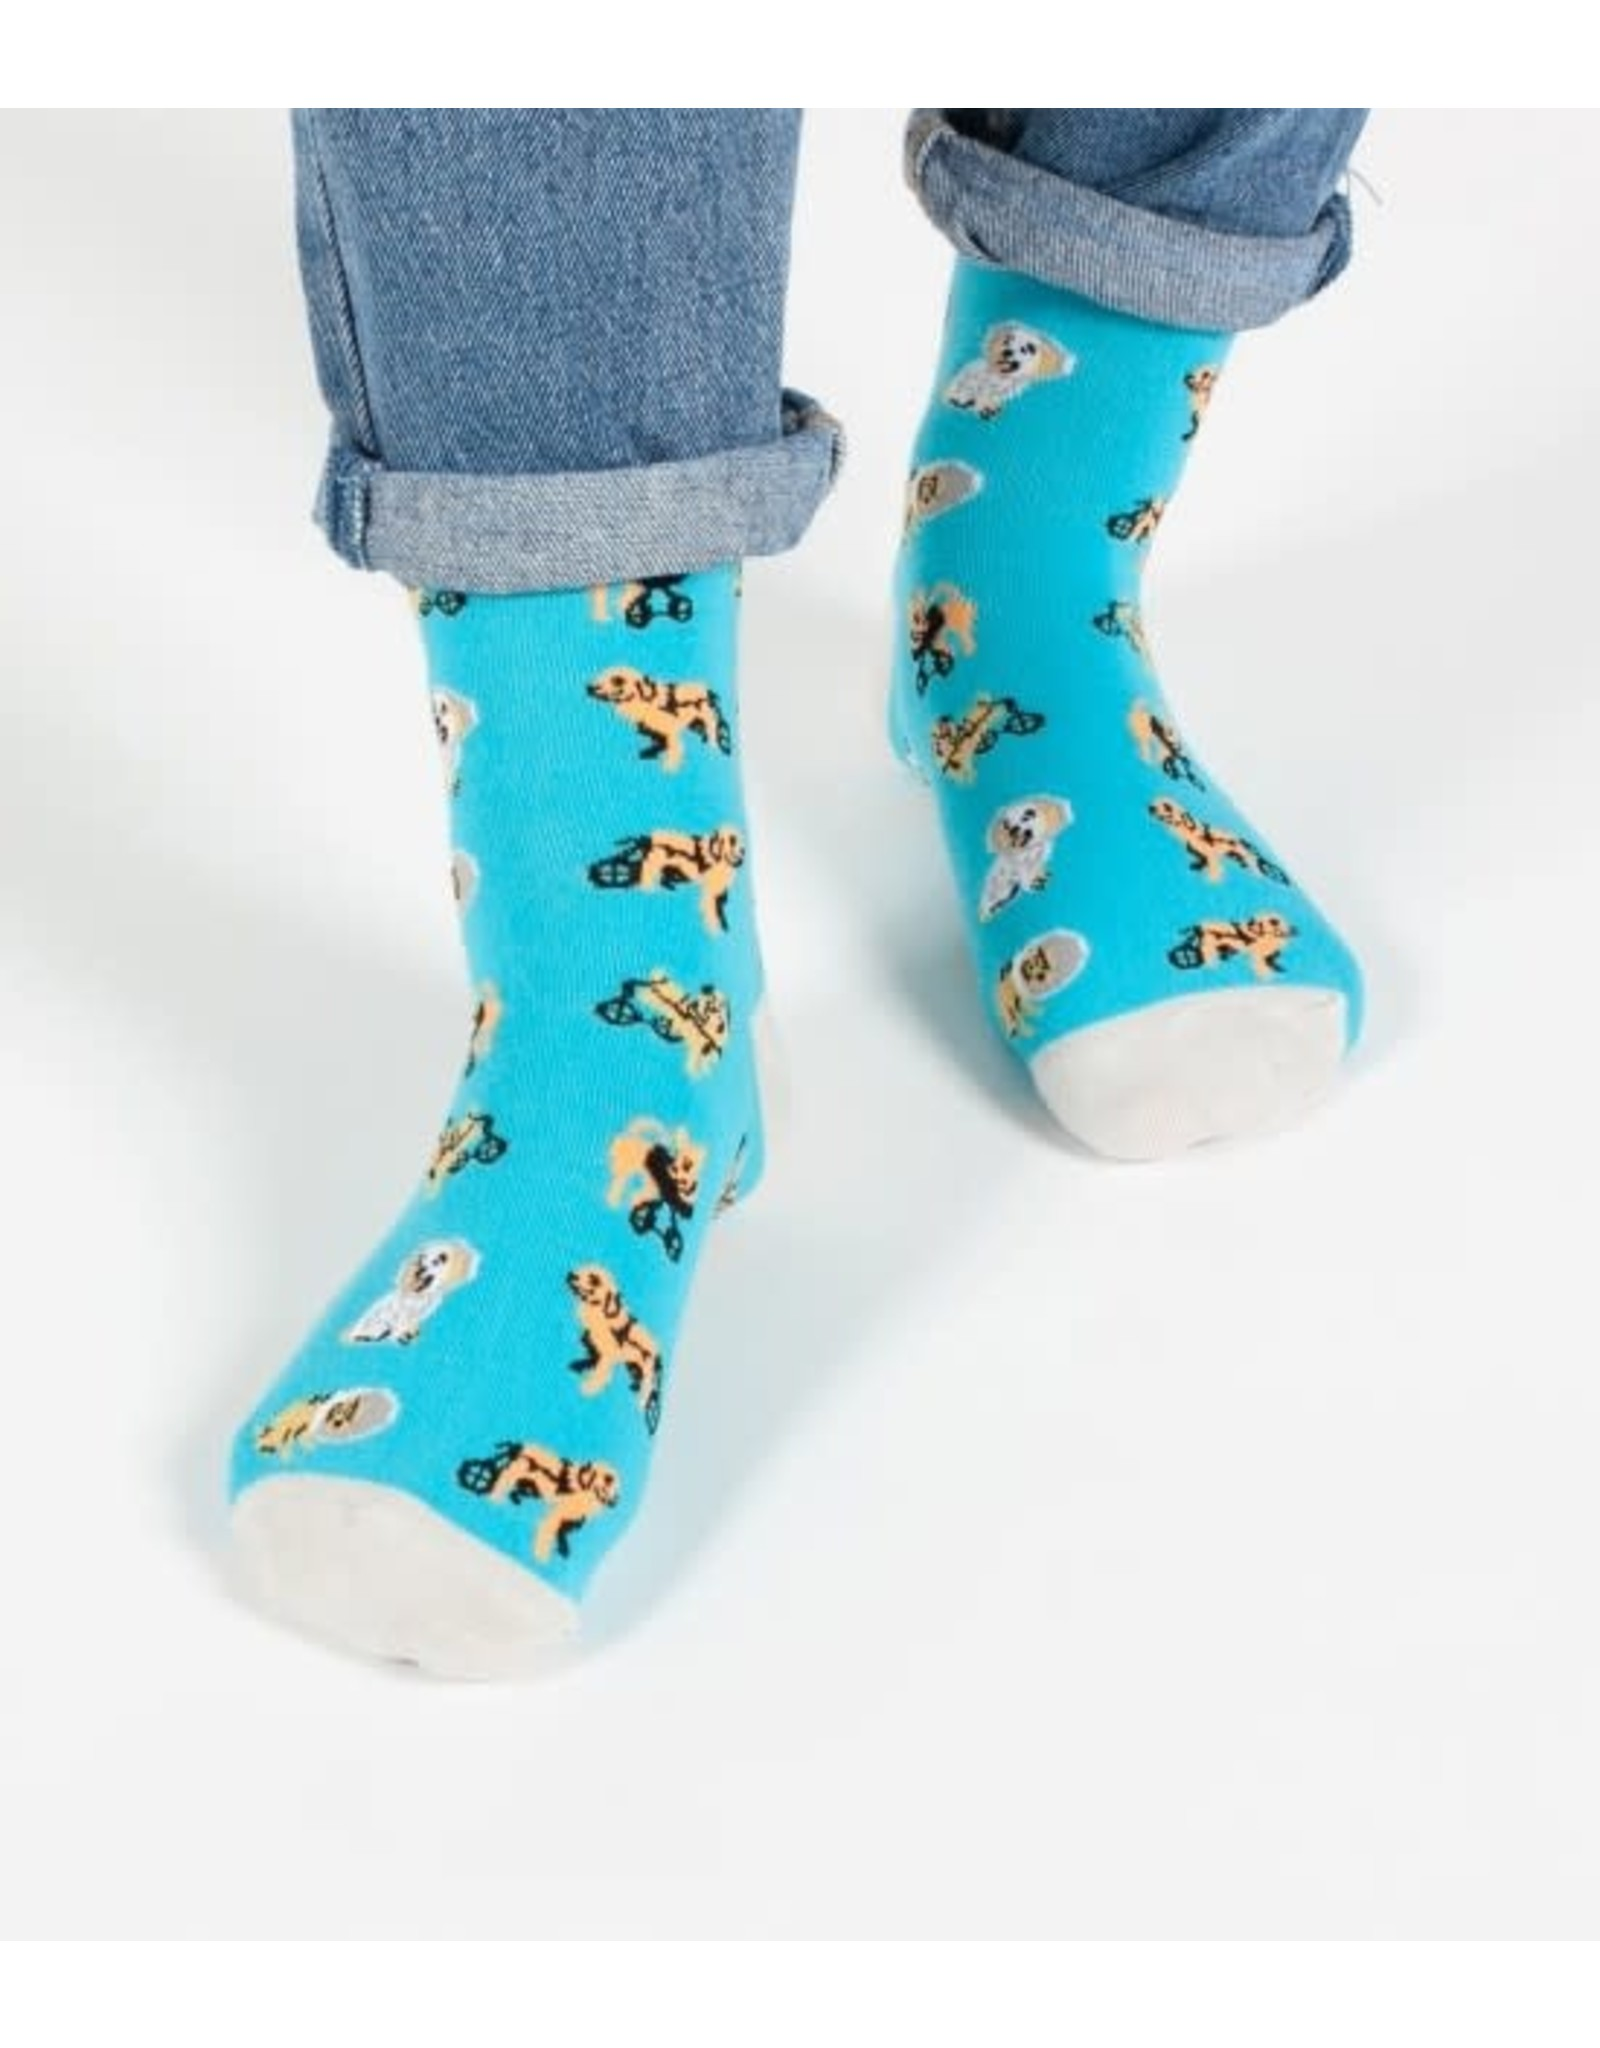 HEADLINES HEADLINE DISABLED DOGS - WOMENS SOCK